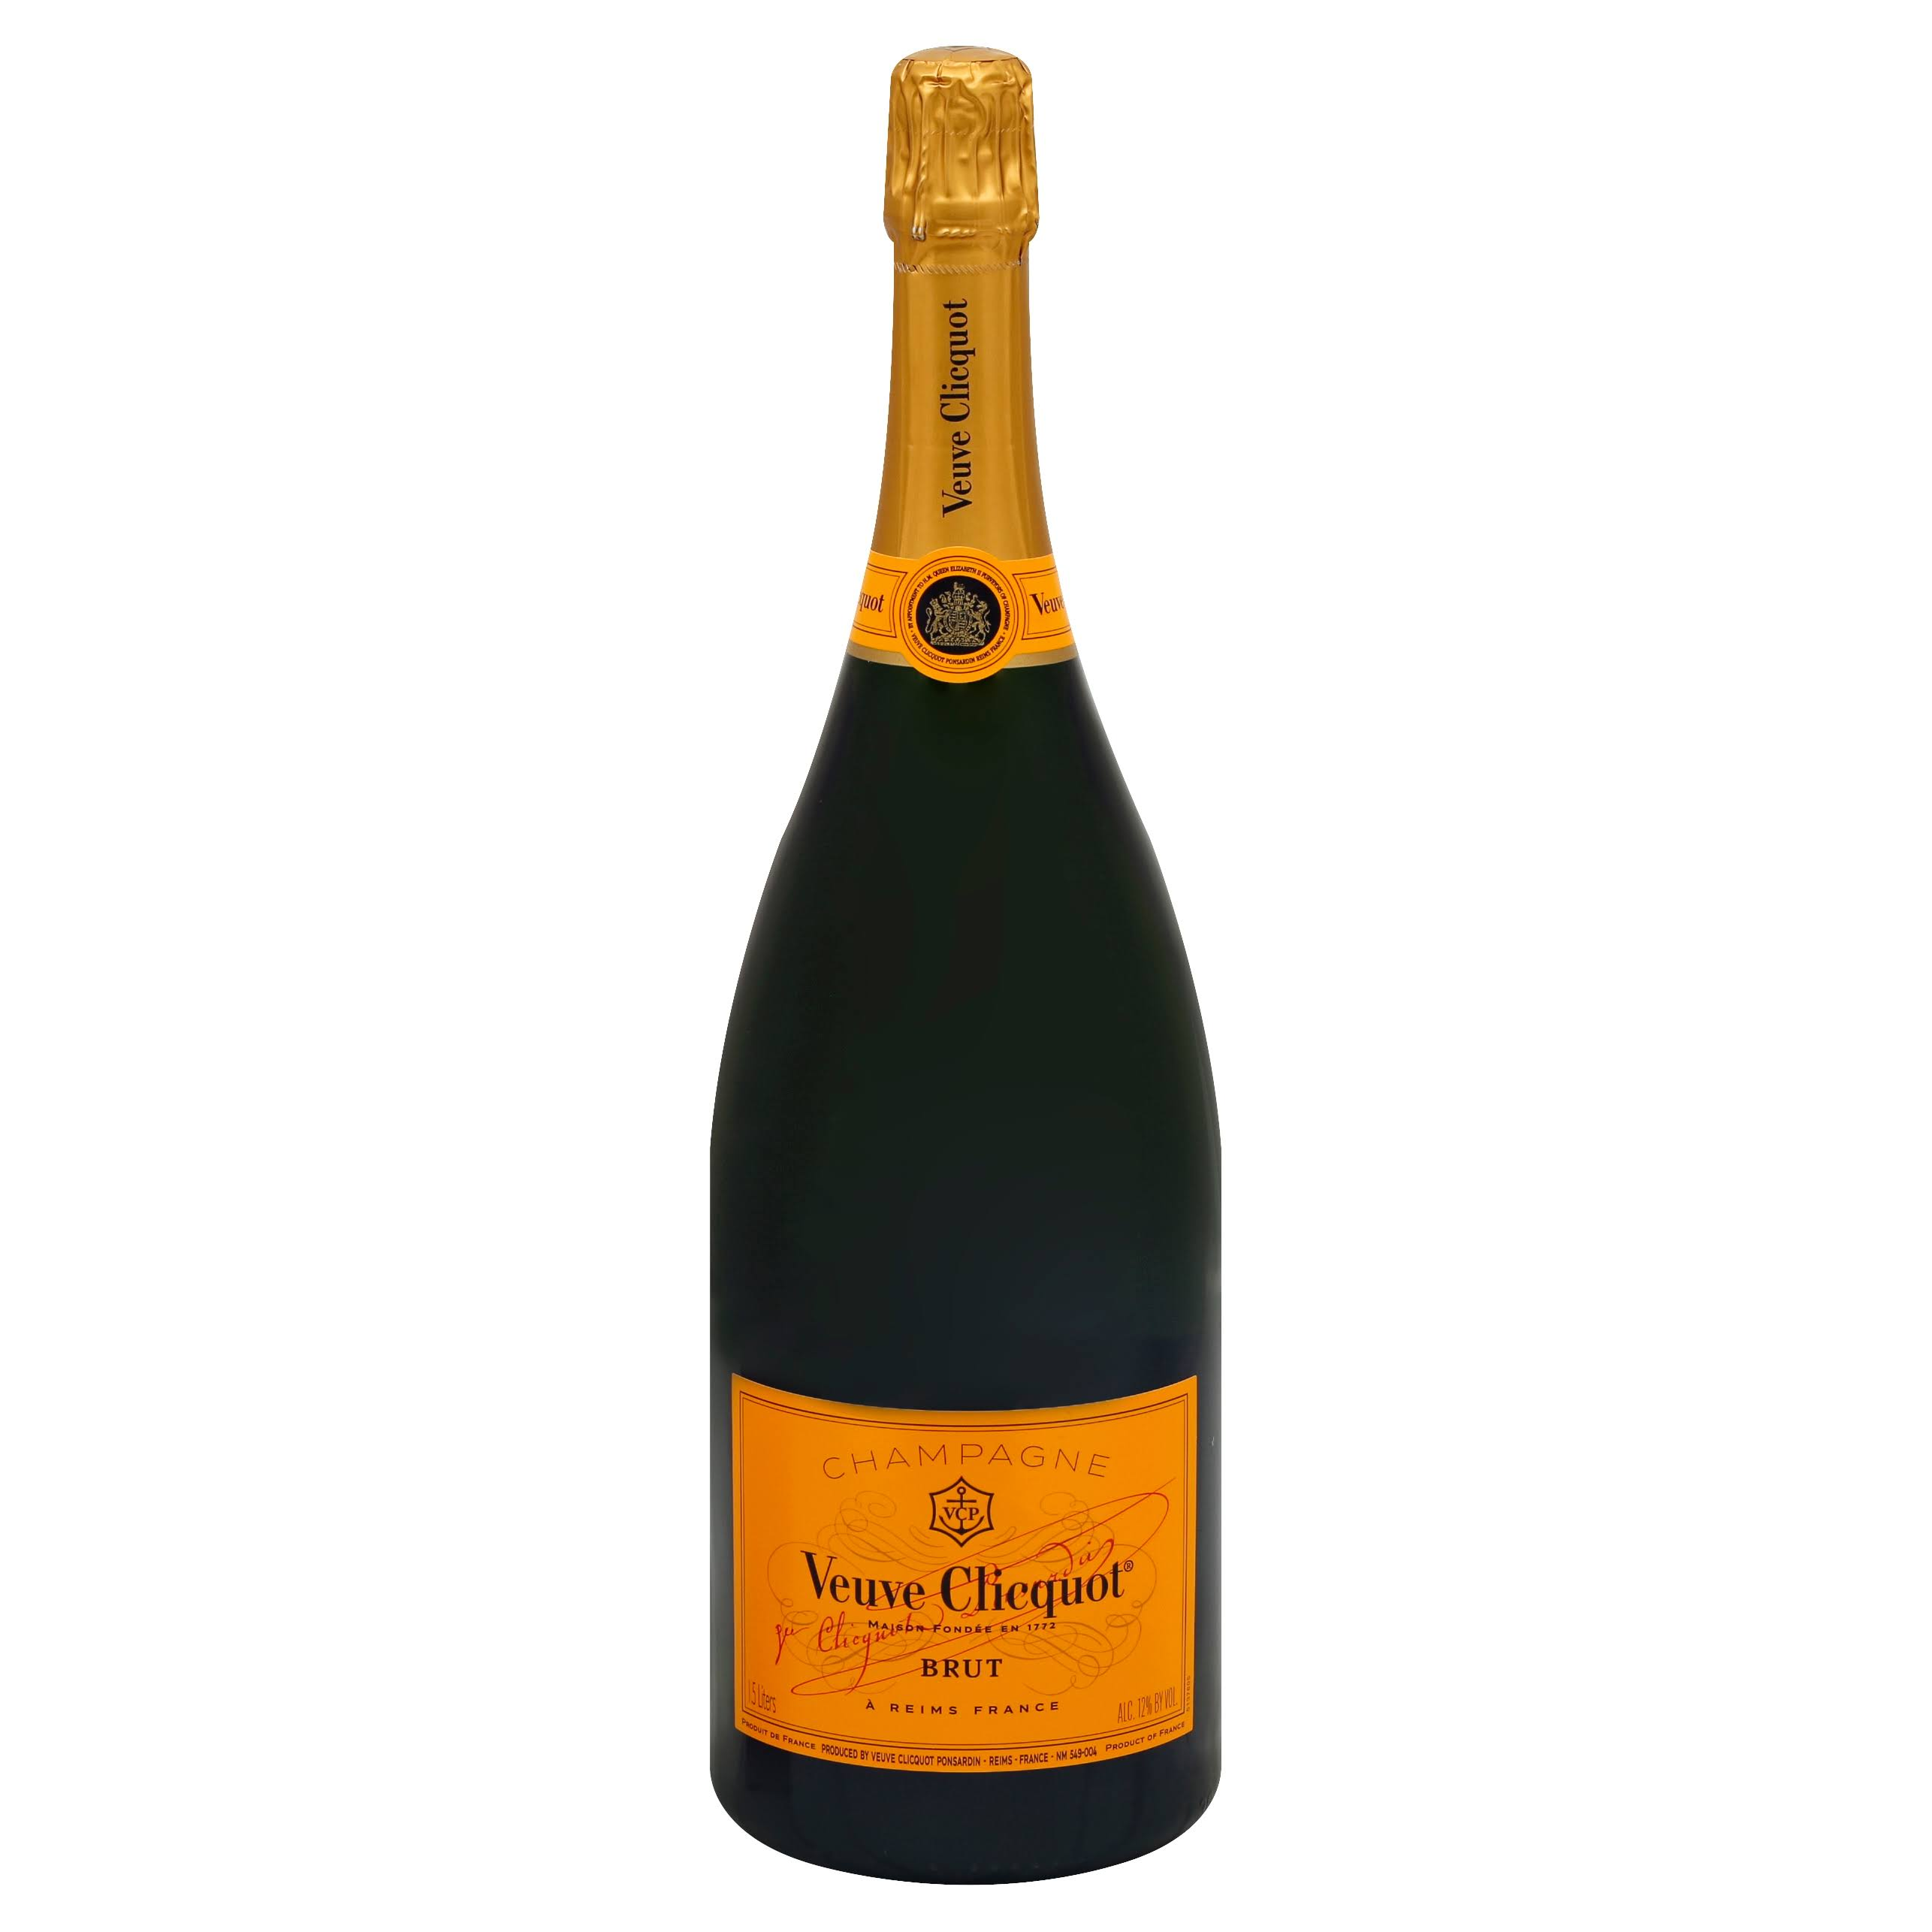 Veuve Clicquot Yellow Label Champagne - 1.5L